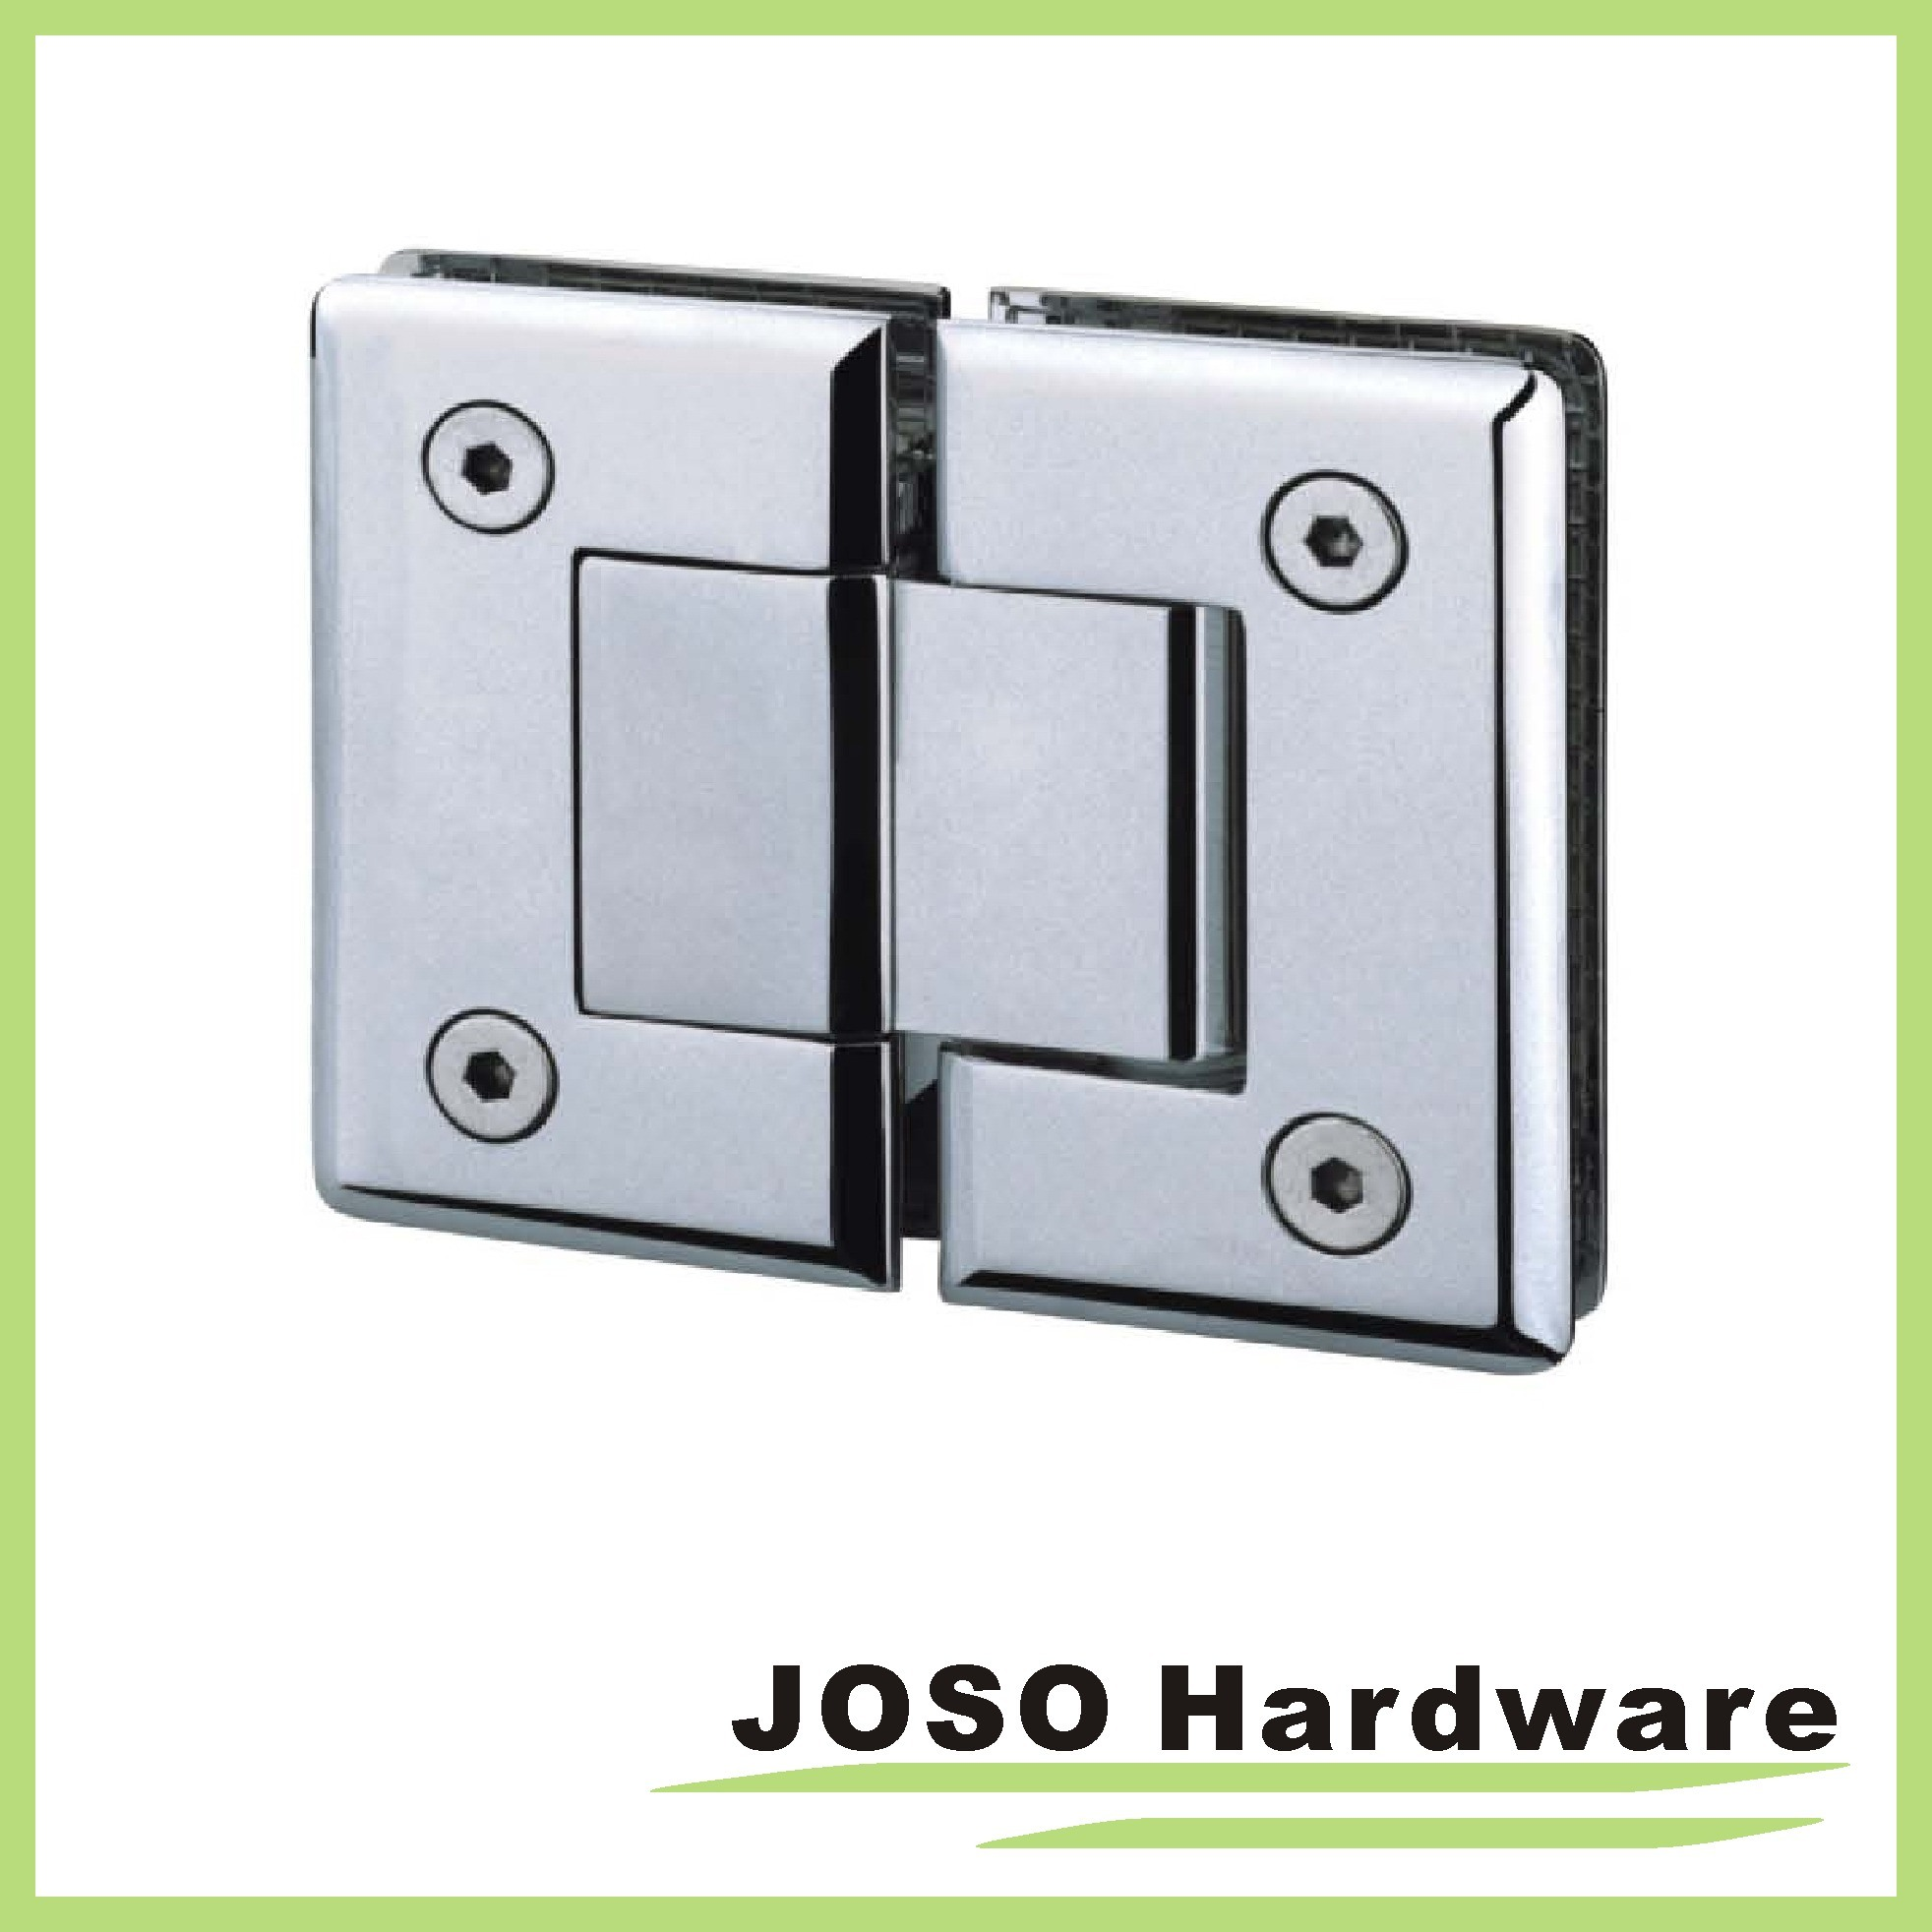 180 Degree Glass to Glass Brass Mount Shower Hinge